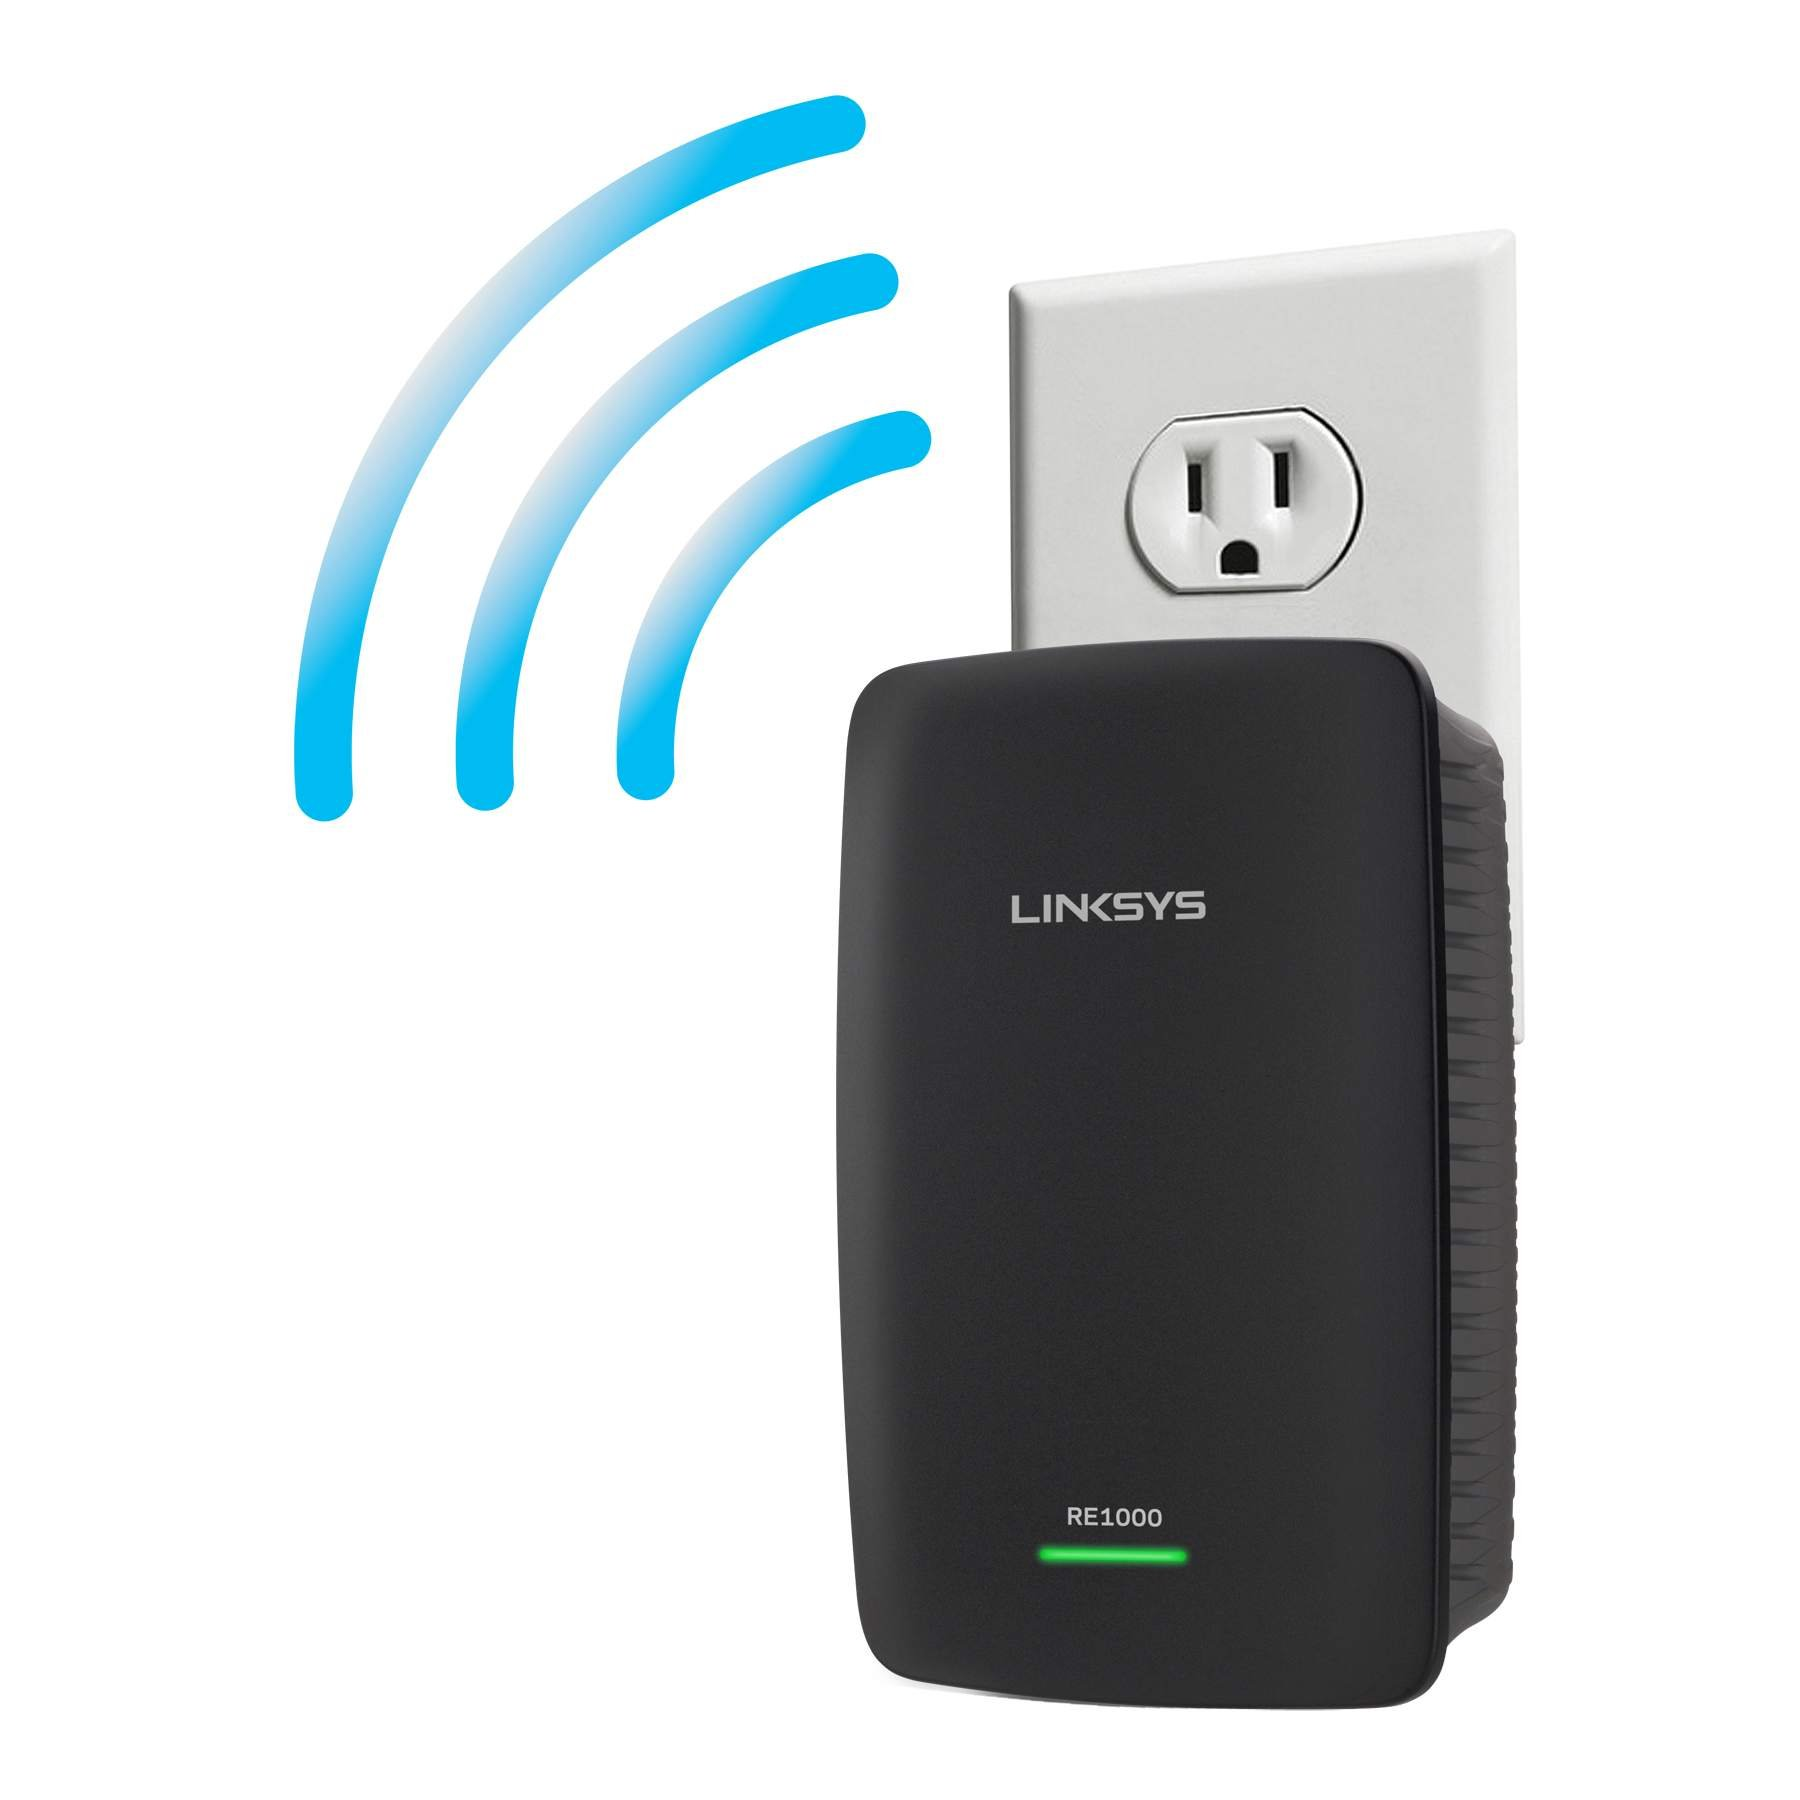 Linksys N300 Wireless Dual-Band Range Extender (RE1000) by Linksys (Image #6)